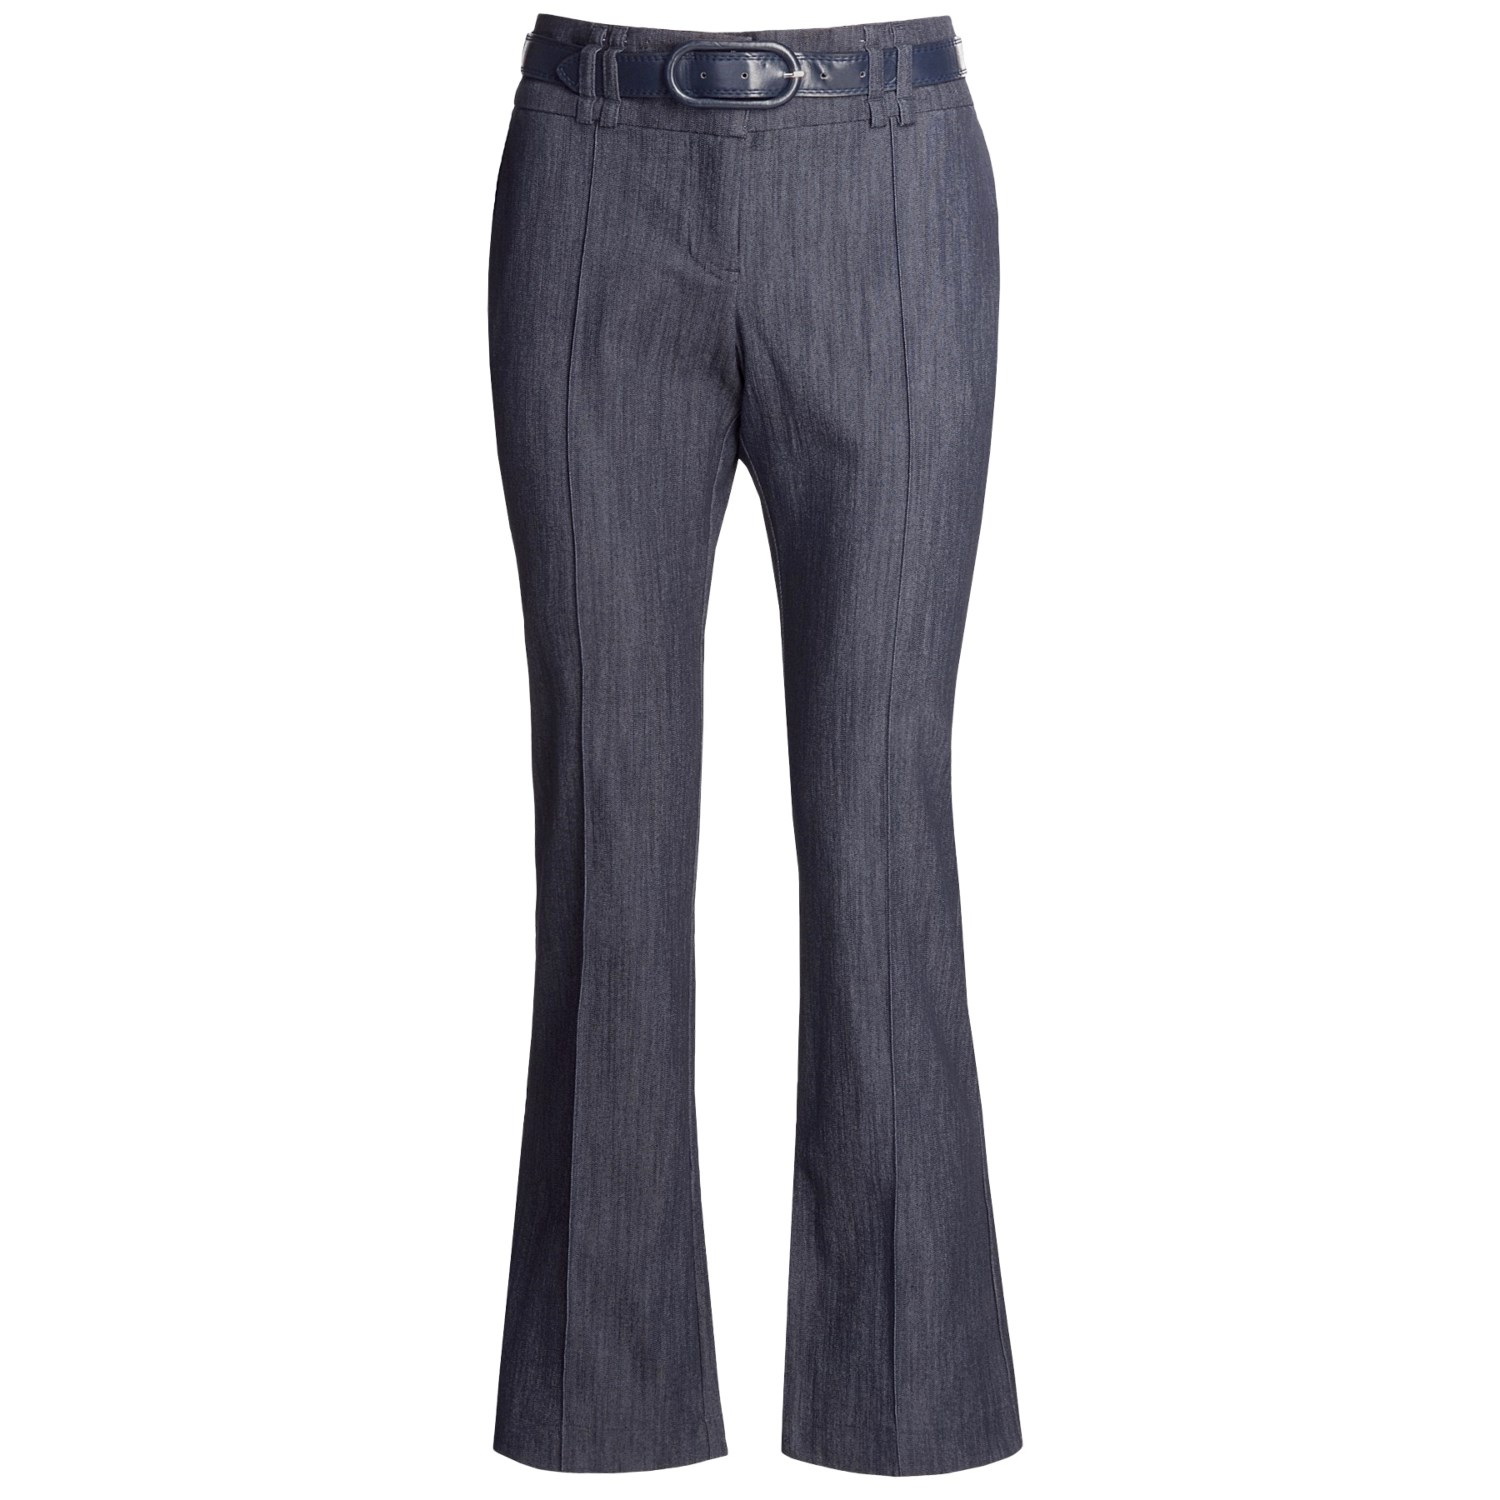 The Perfect Pair(s) - %color %size Pants for Women